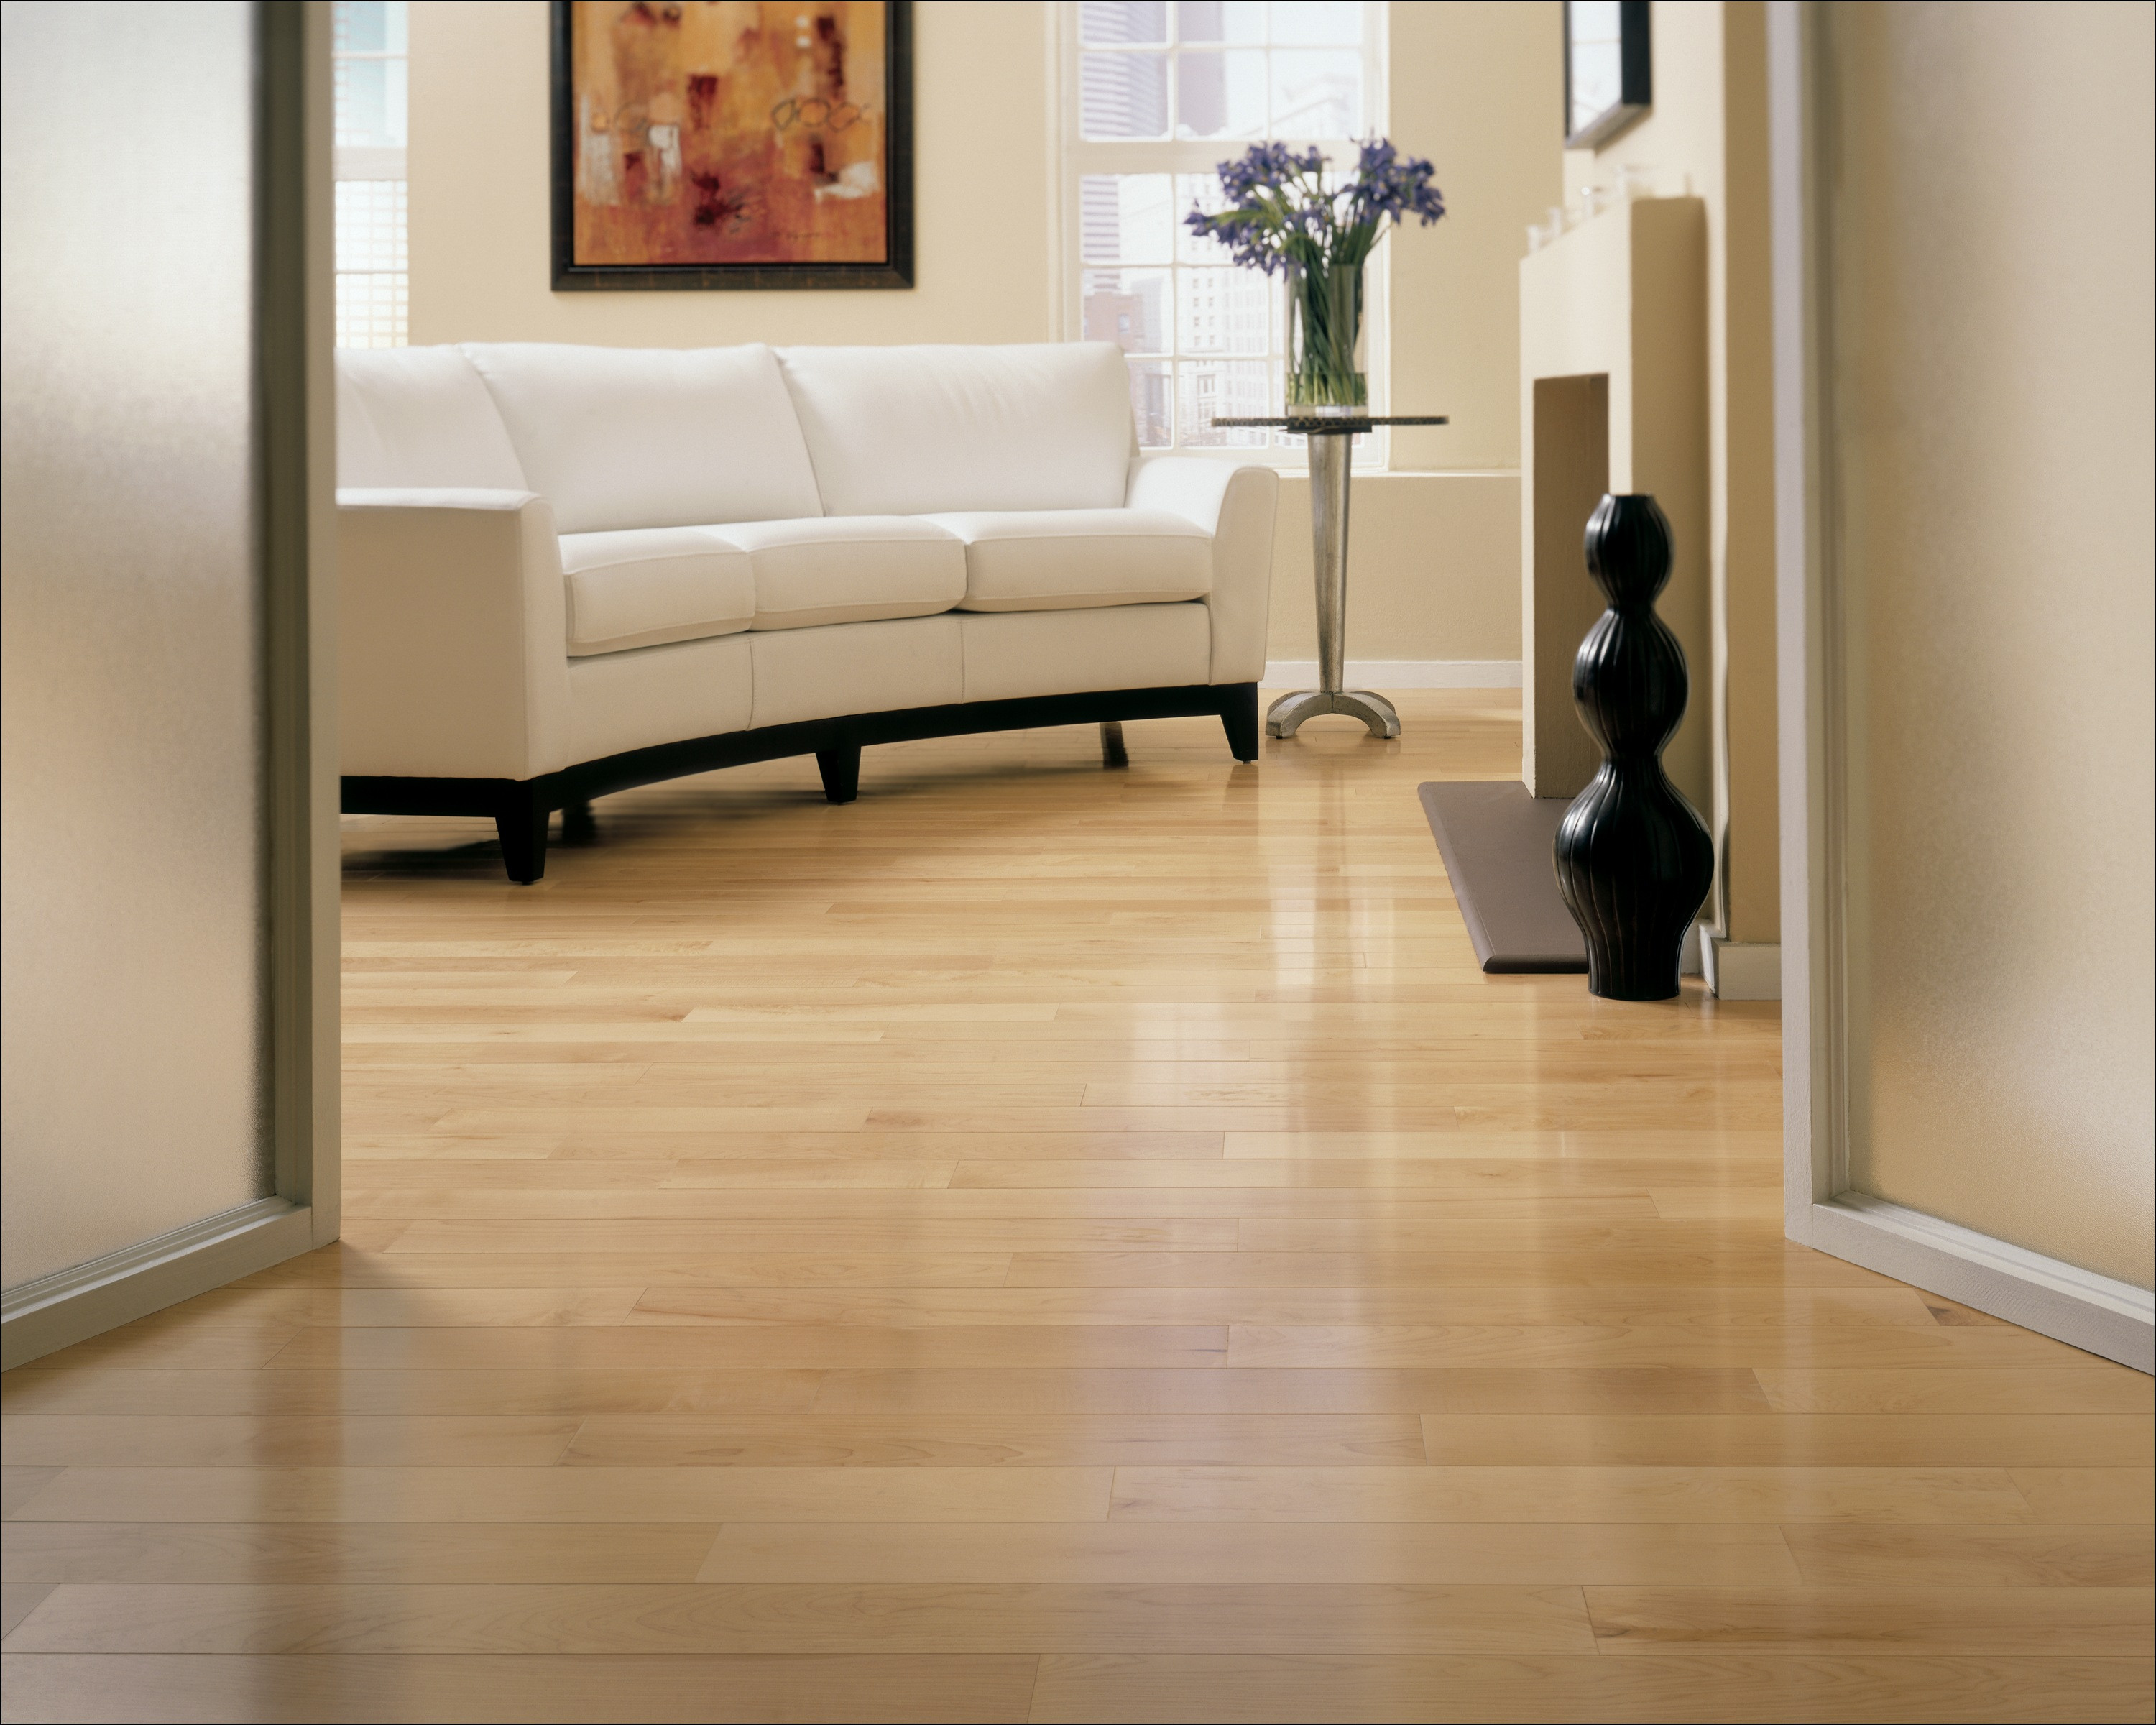 Hardwood Flooring Tulsa Of Best Place Flooring Ideas within Best Place to Buy Engineered Hardwood Flooring Images Rochester Hardwood Floors Of Utica Engineered Of Best